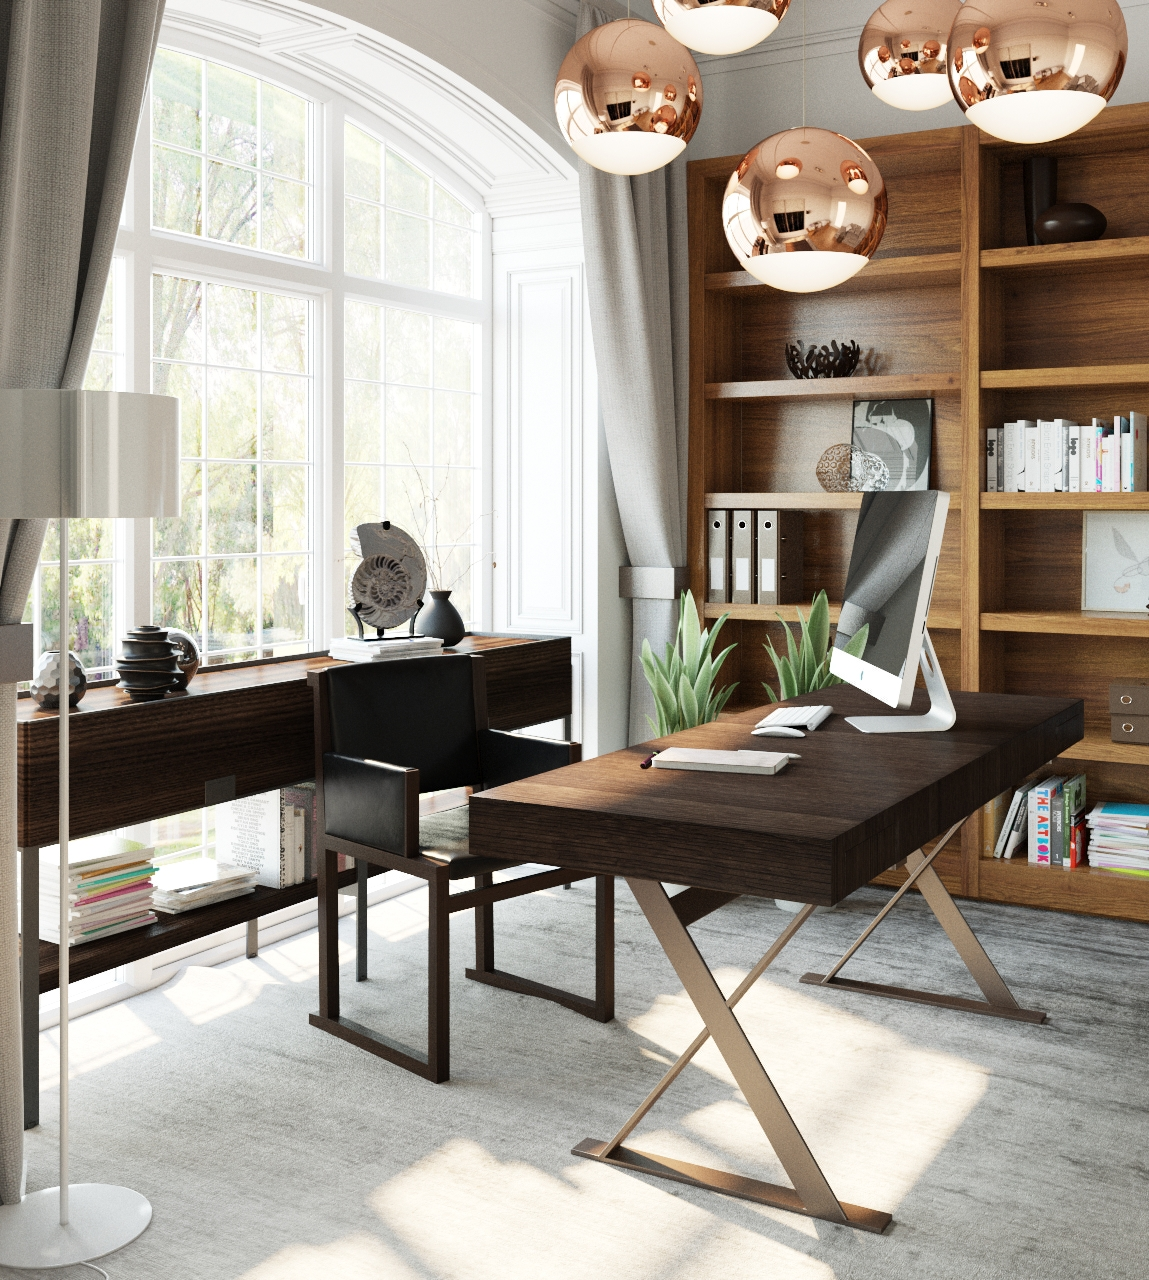 Home Study Design Ideas: 3 Examples Of Modern Simplicity